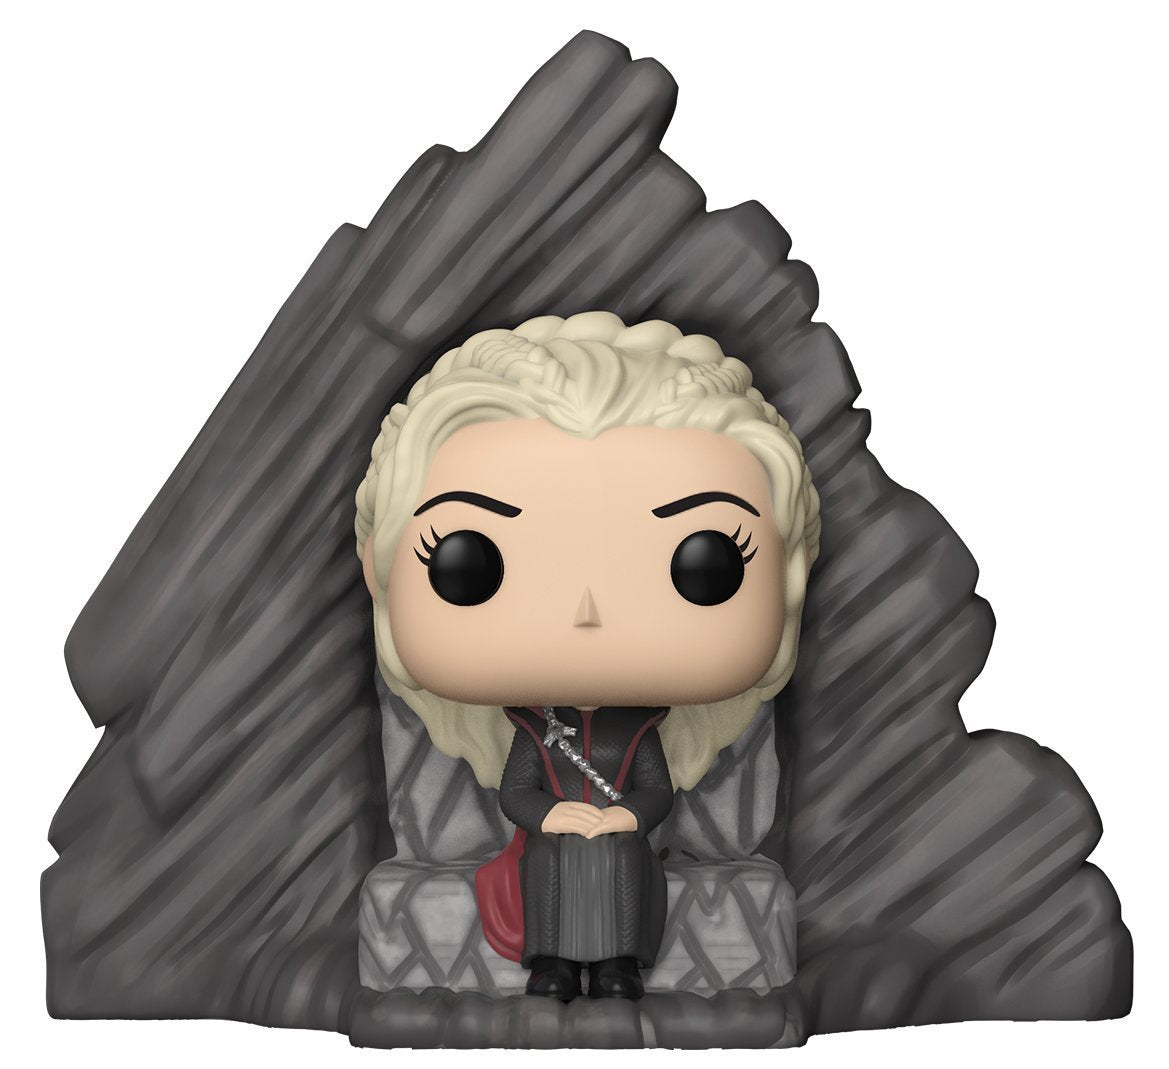 Game of Thrones - Daenerys on Dragonstone Throne